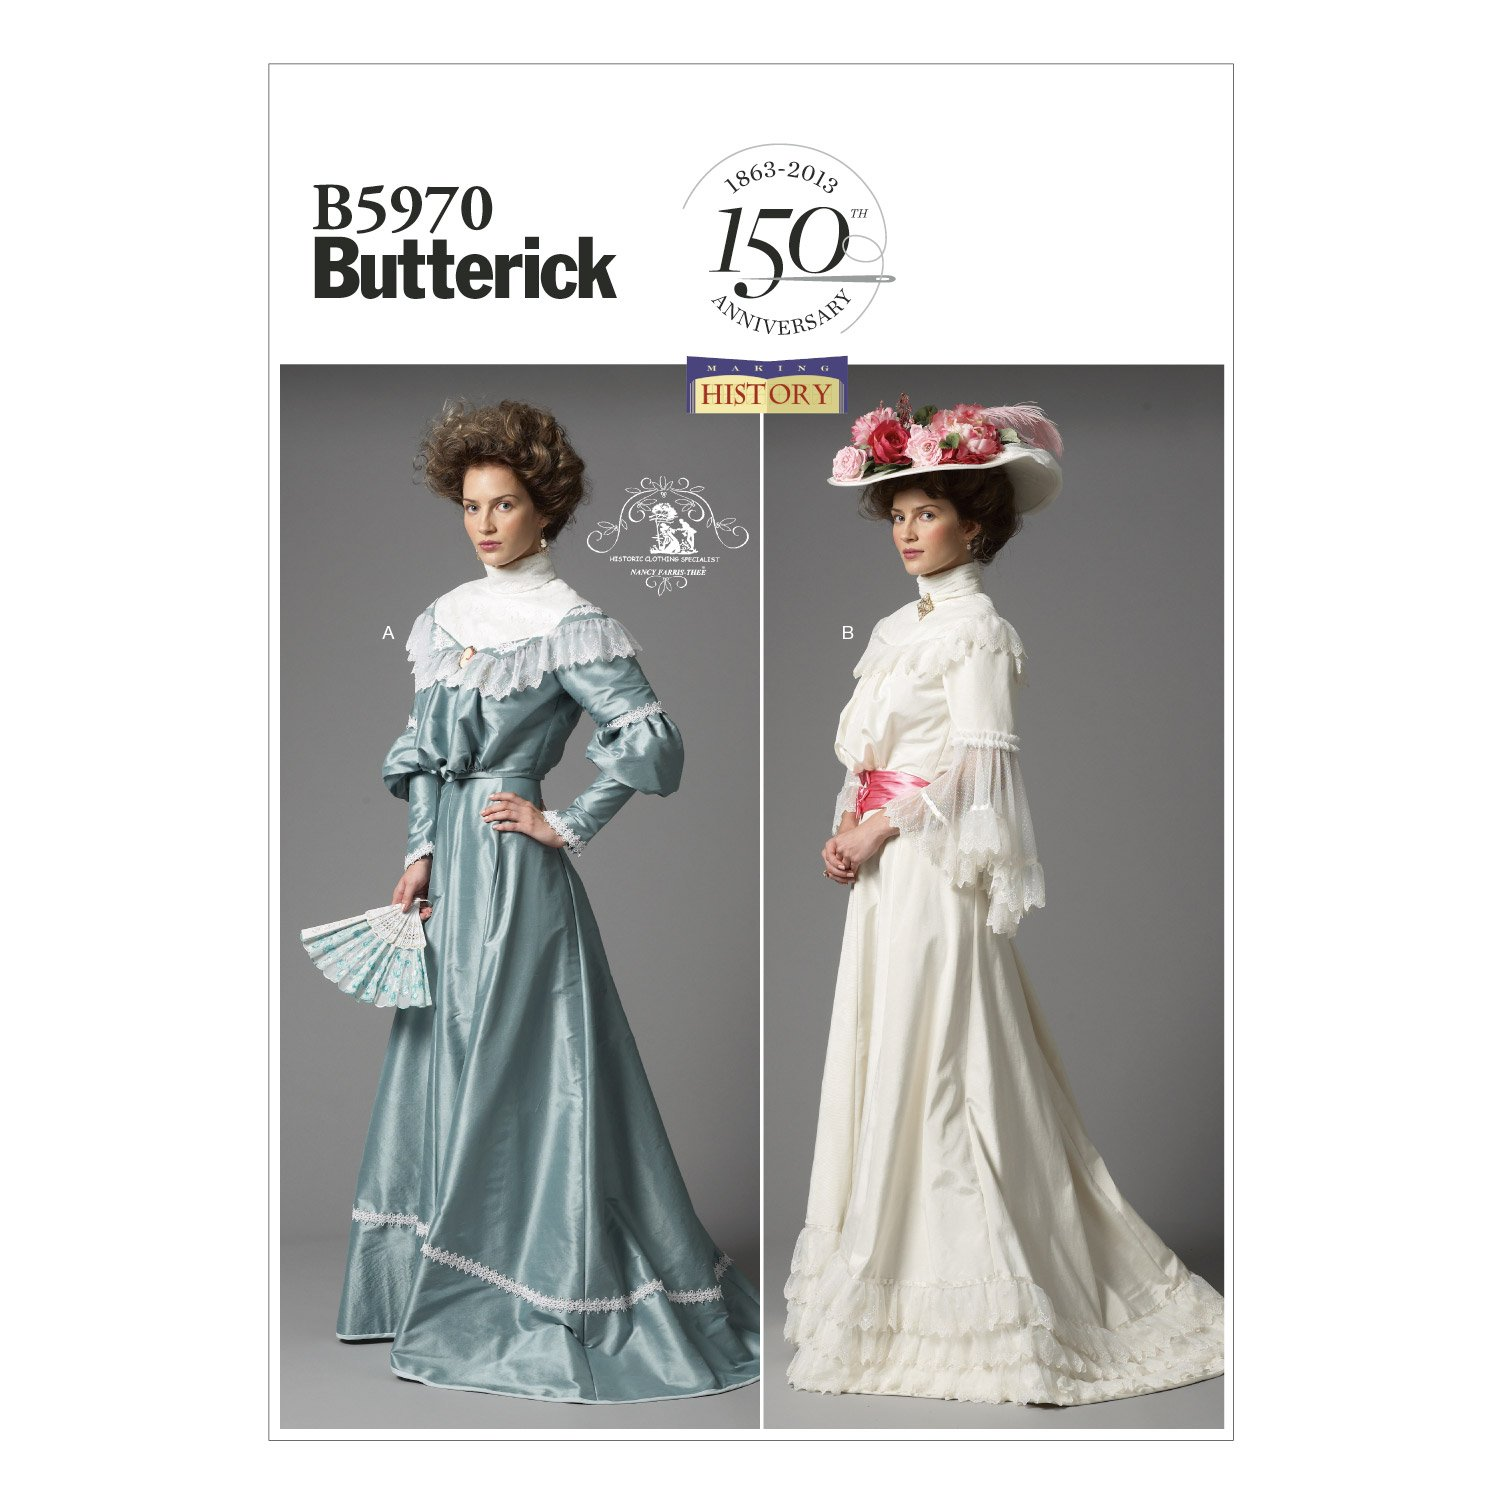 Butterick B5970 Victorian Dress Pattern